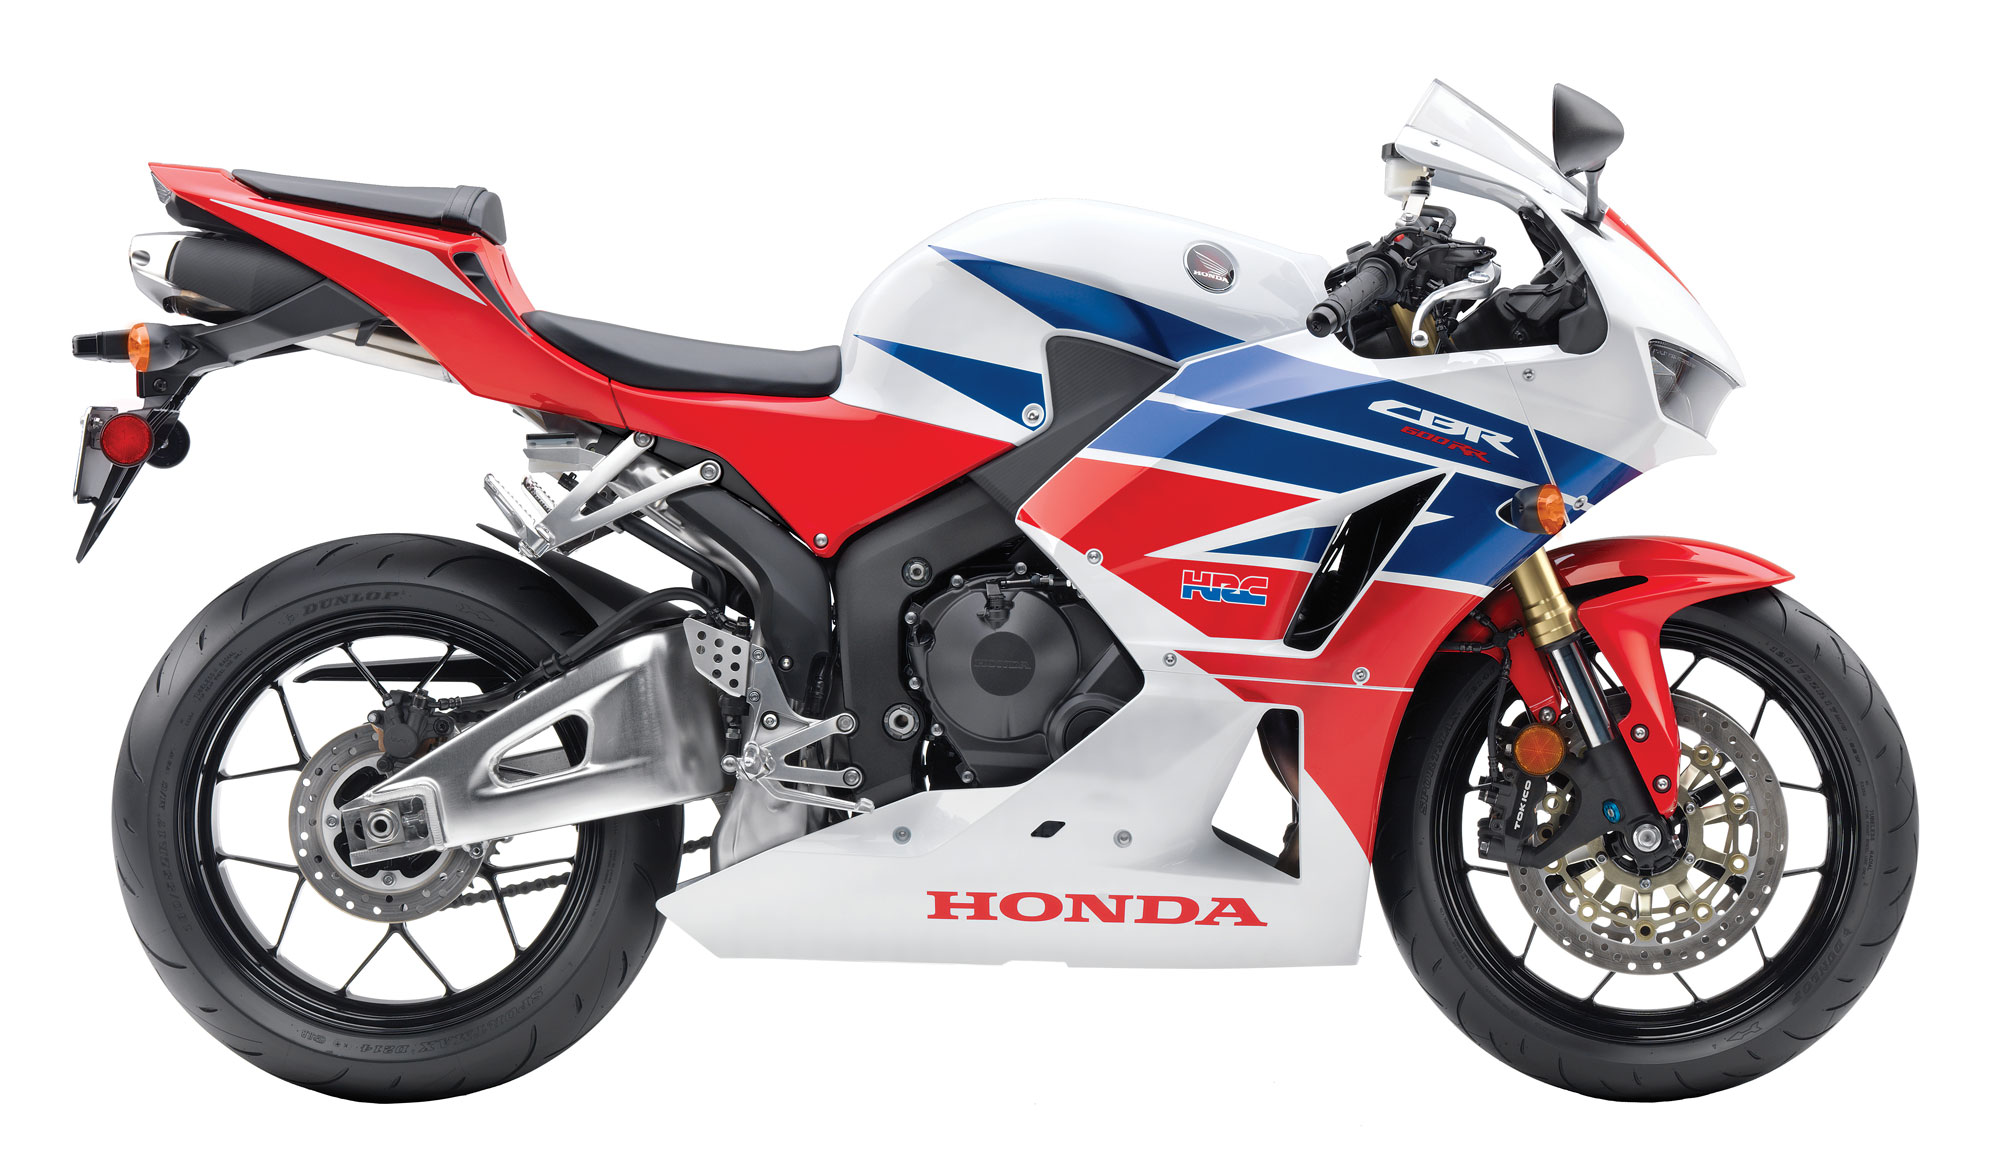 2013 Honda CBR600RR First Ride Review - Experience ...